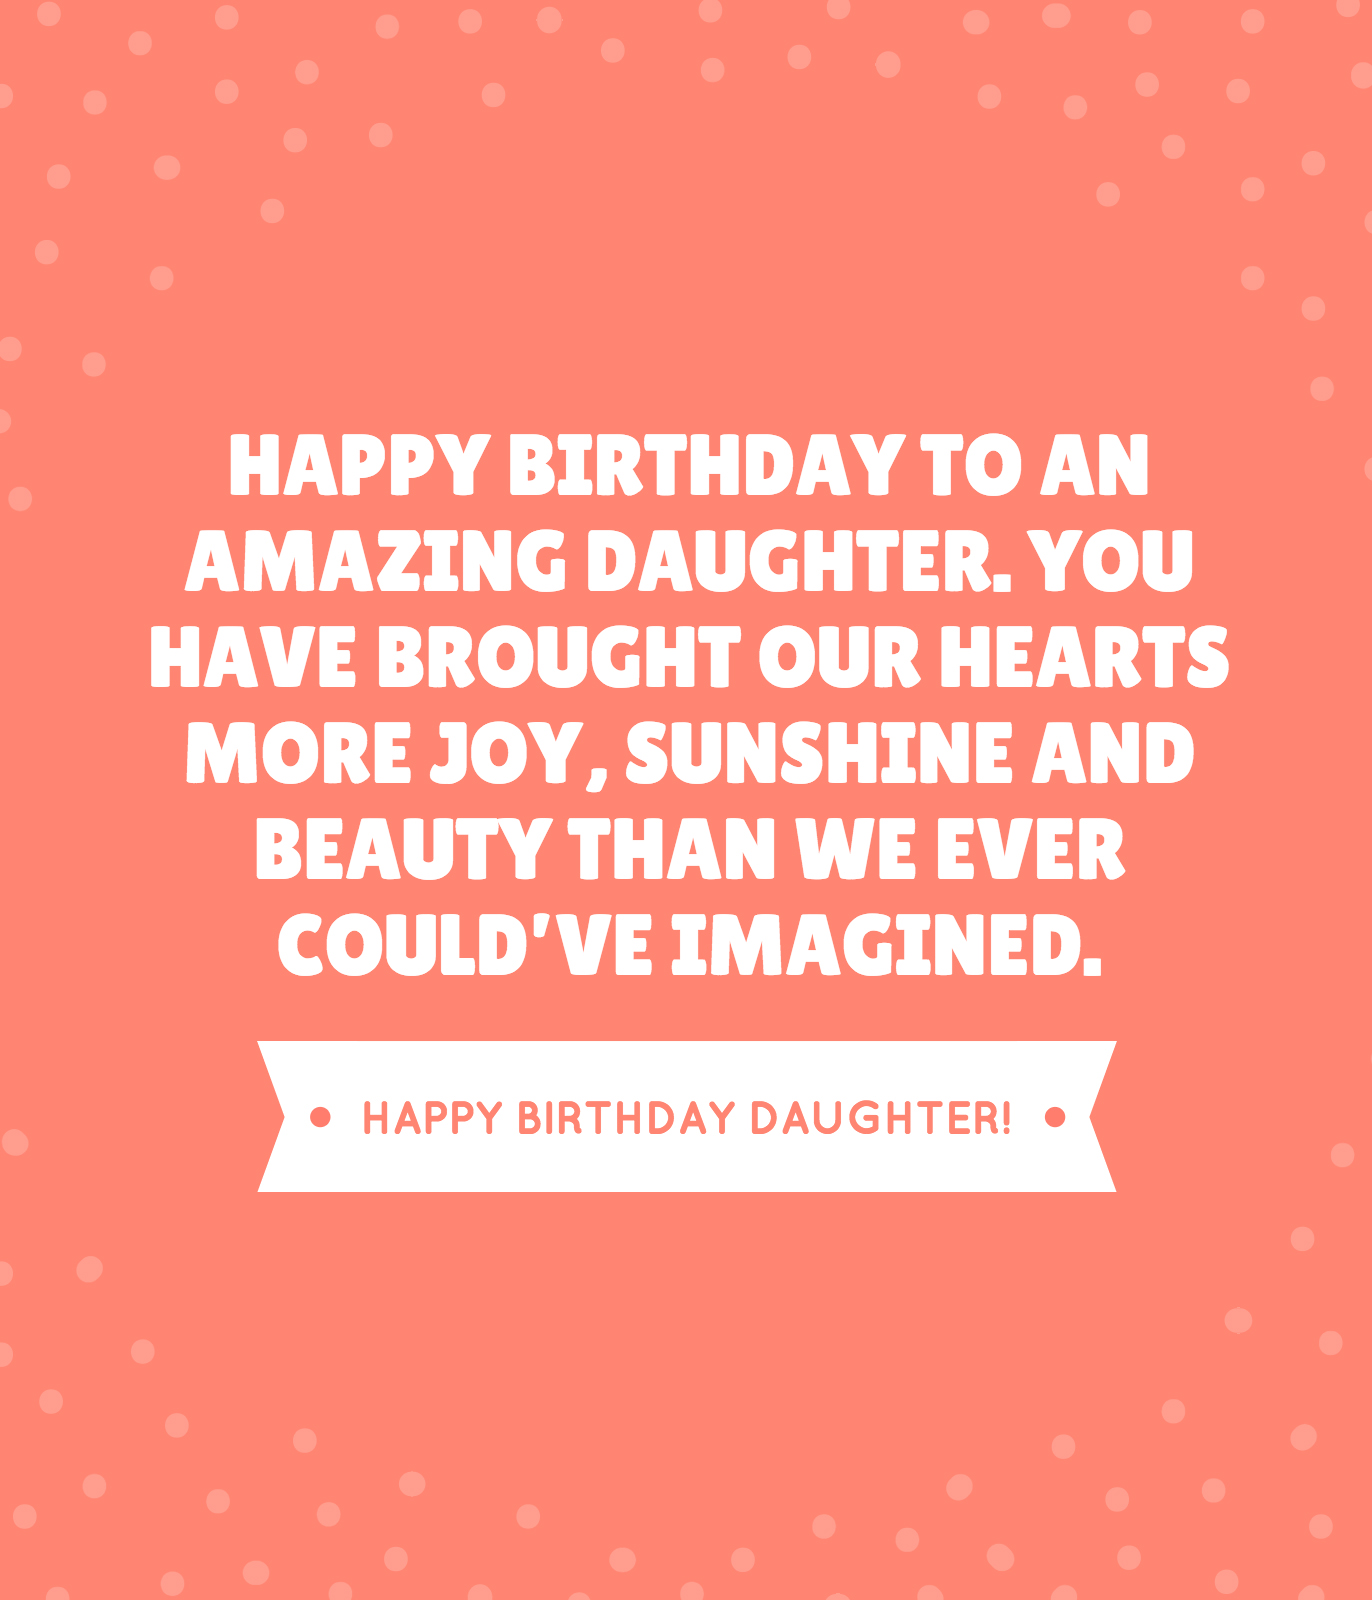 happy birthday daughter quotes ; happy-birthday-daughter-quote